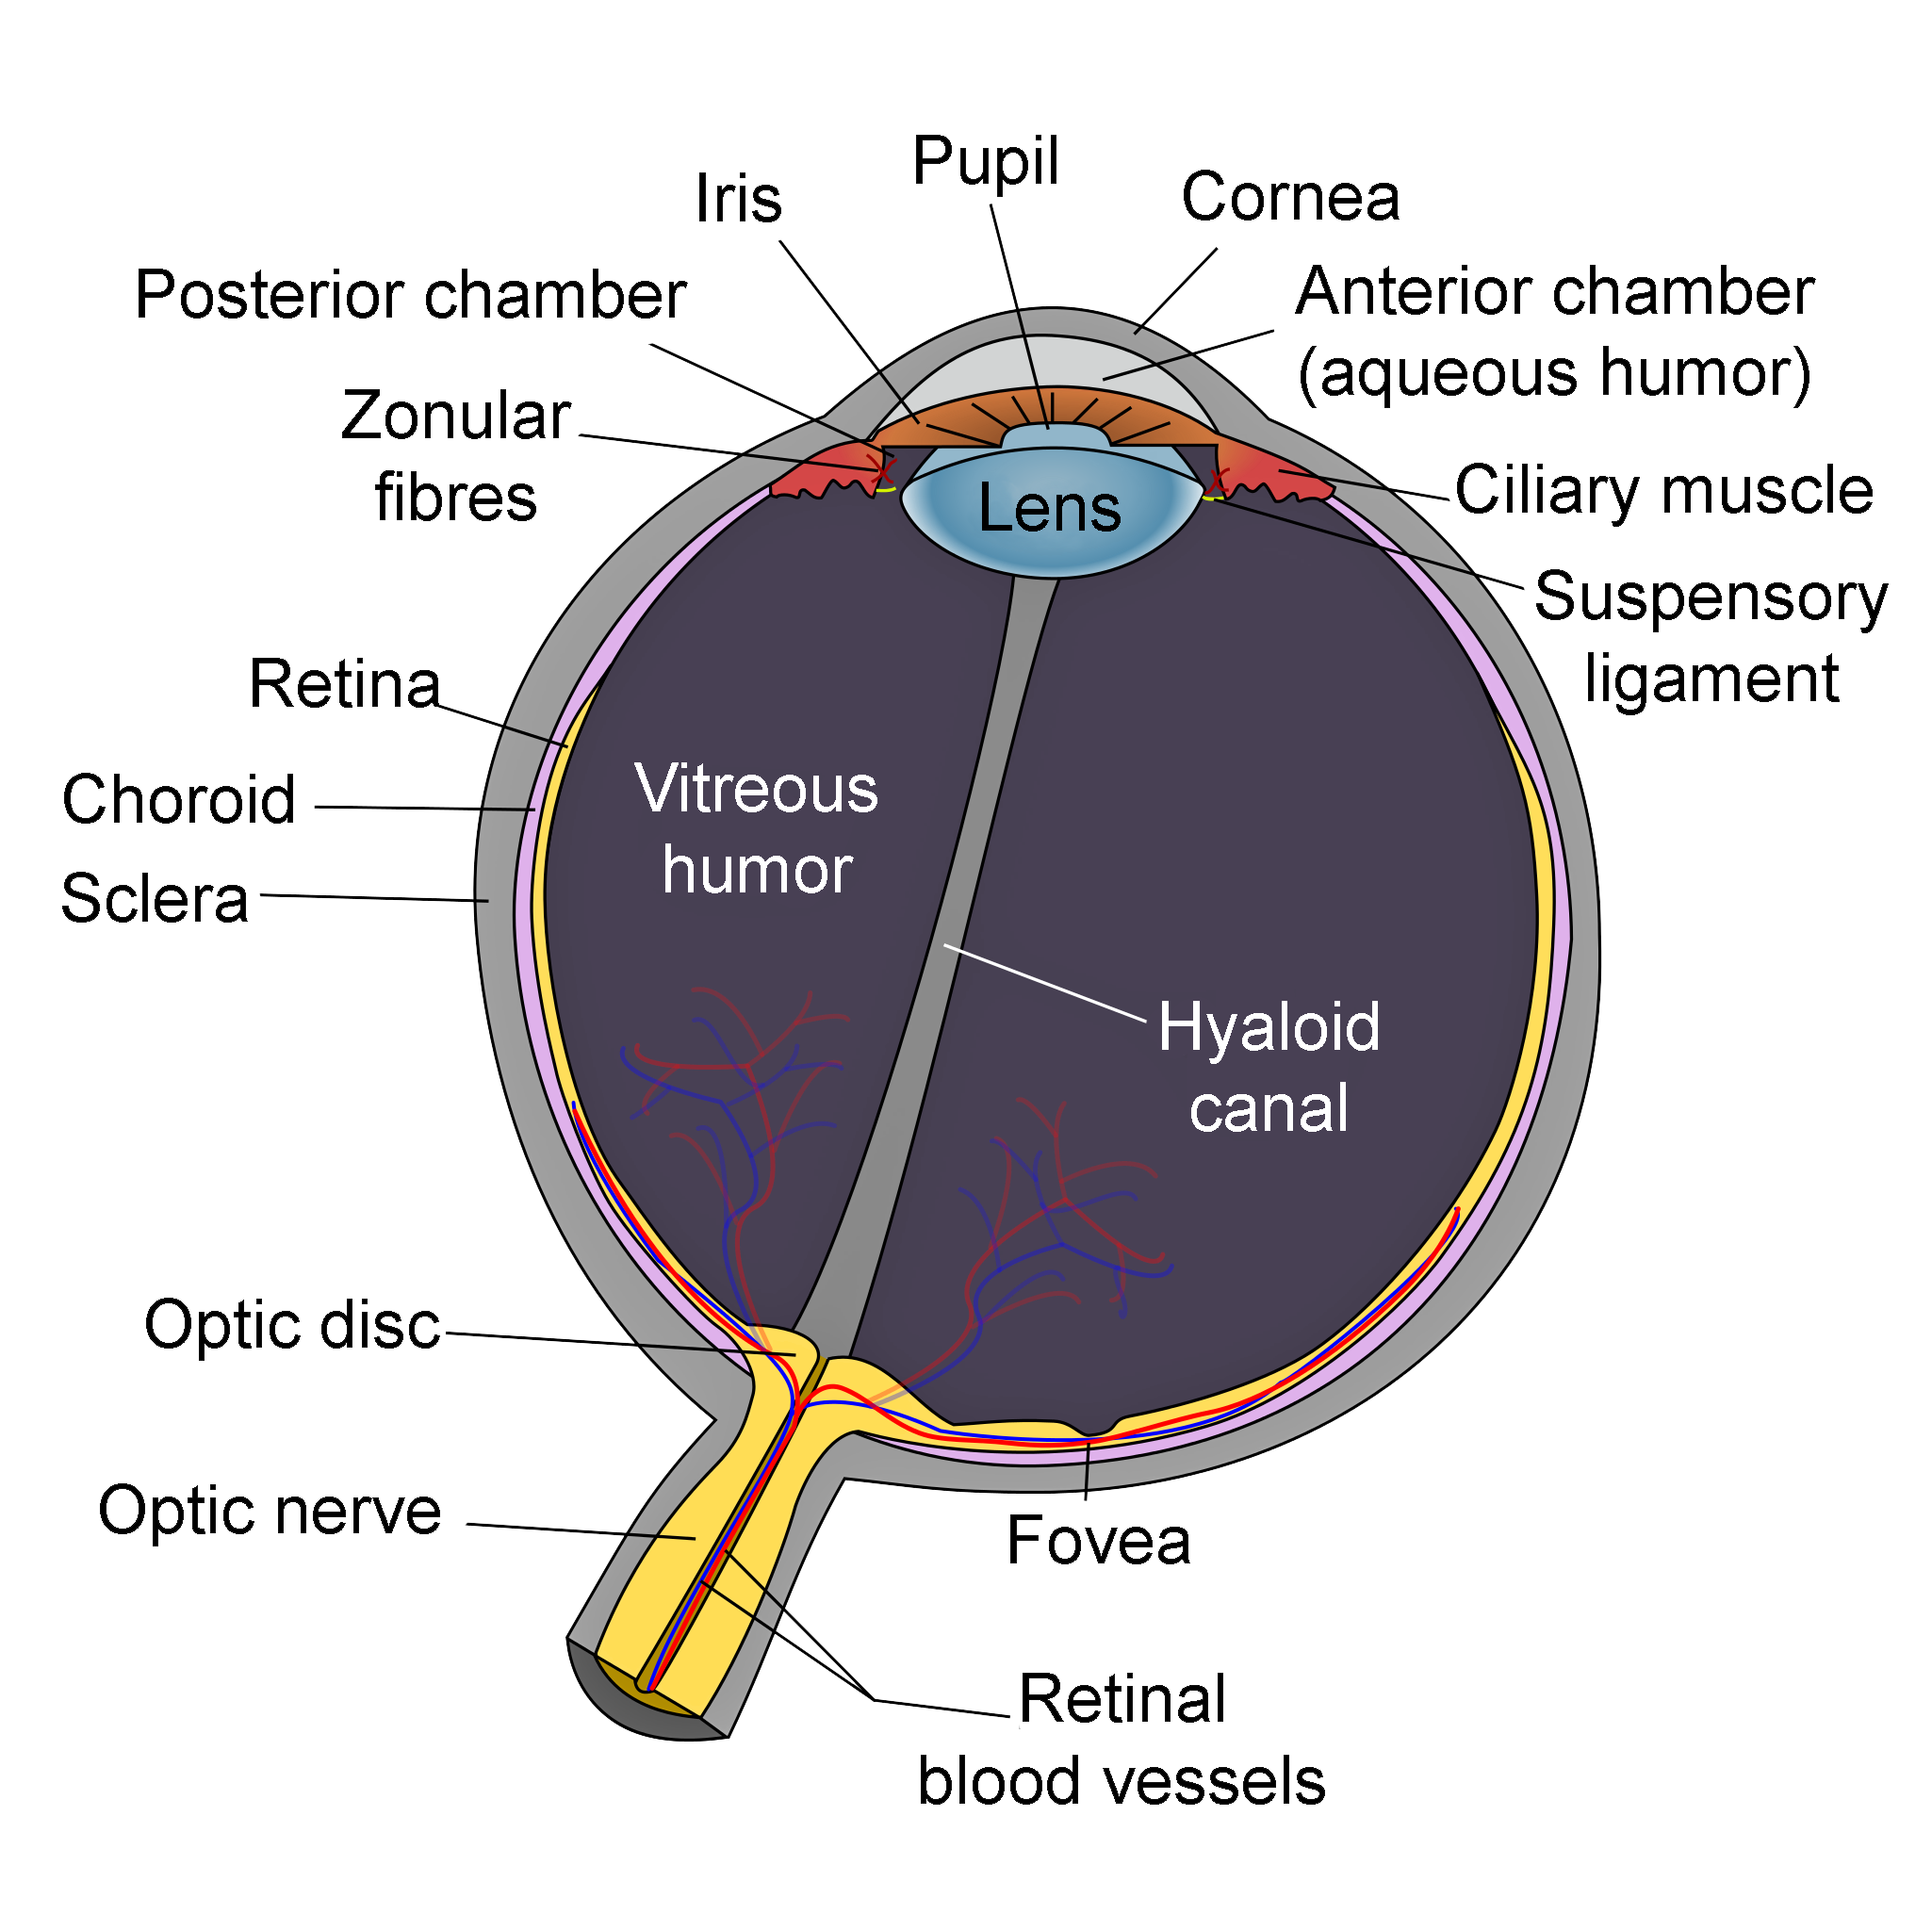 Pin By Nag Champa On Zoology Pinterest Eyes Anatomy And Lens